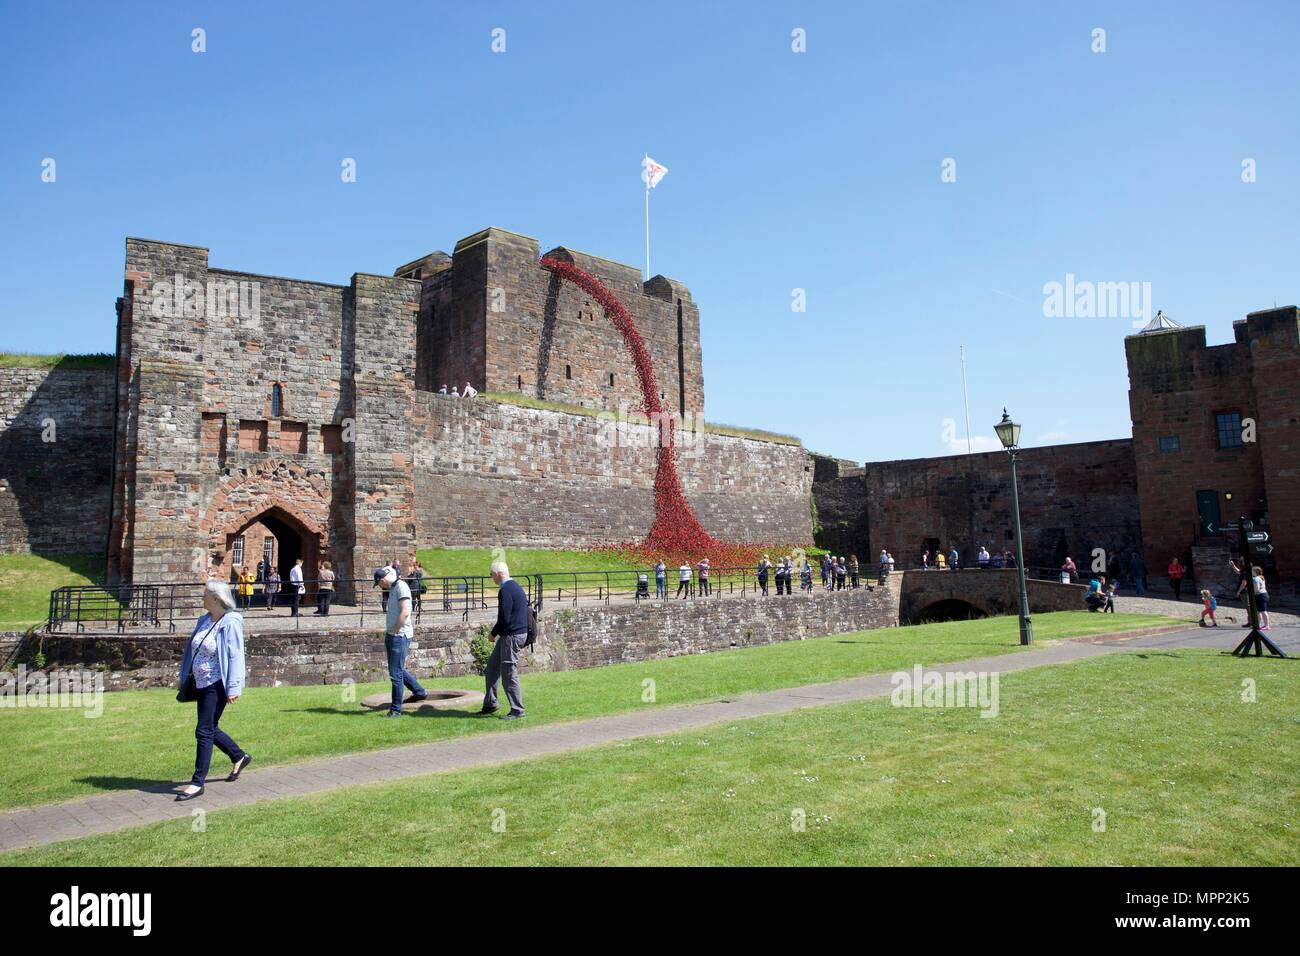 Carlisle Castle, Carlisle Cumbria, UK. 23rd, May, 2018. Weeping Window of  ceramic poppies art installation at Carlisle Castle. The project commemorates the First World War and is by artist Paul Cummins and designer Tom Piper. Part of Blood Swept Lands and Seas of Red installation. Credit: Andrew Findlay/Alamy Live News Stock Photo